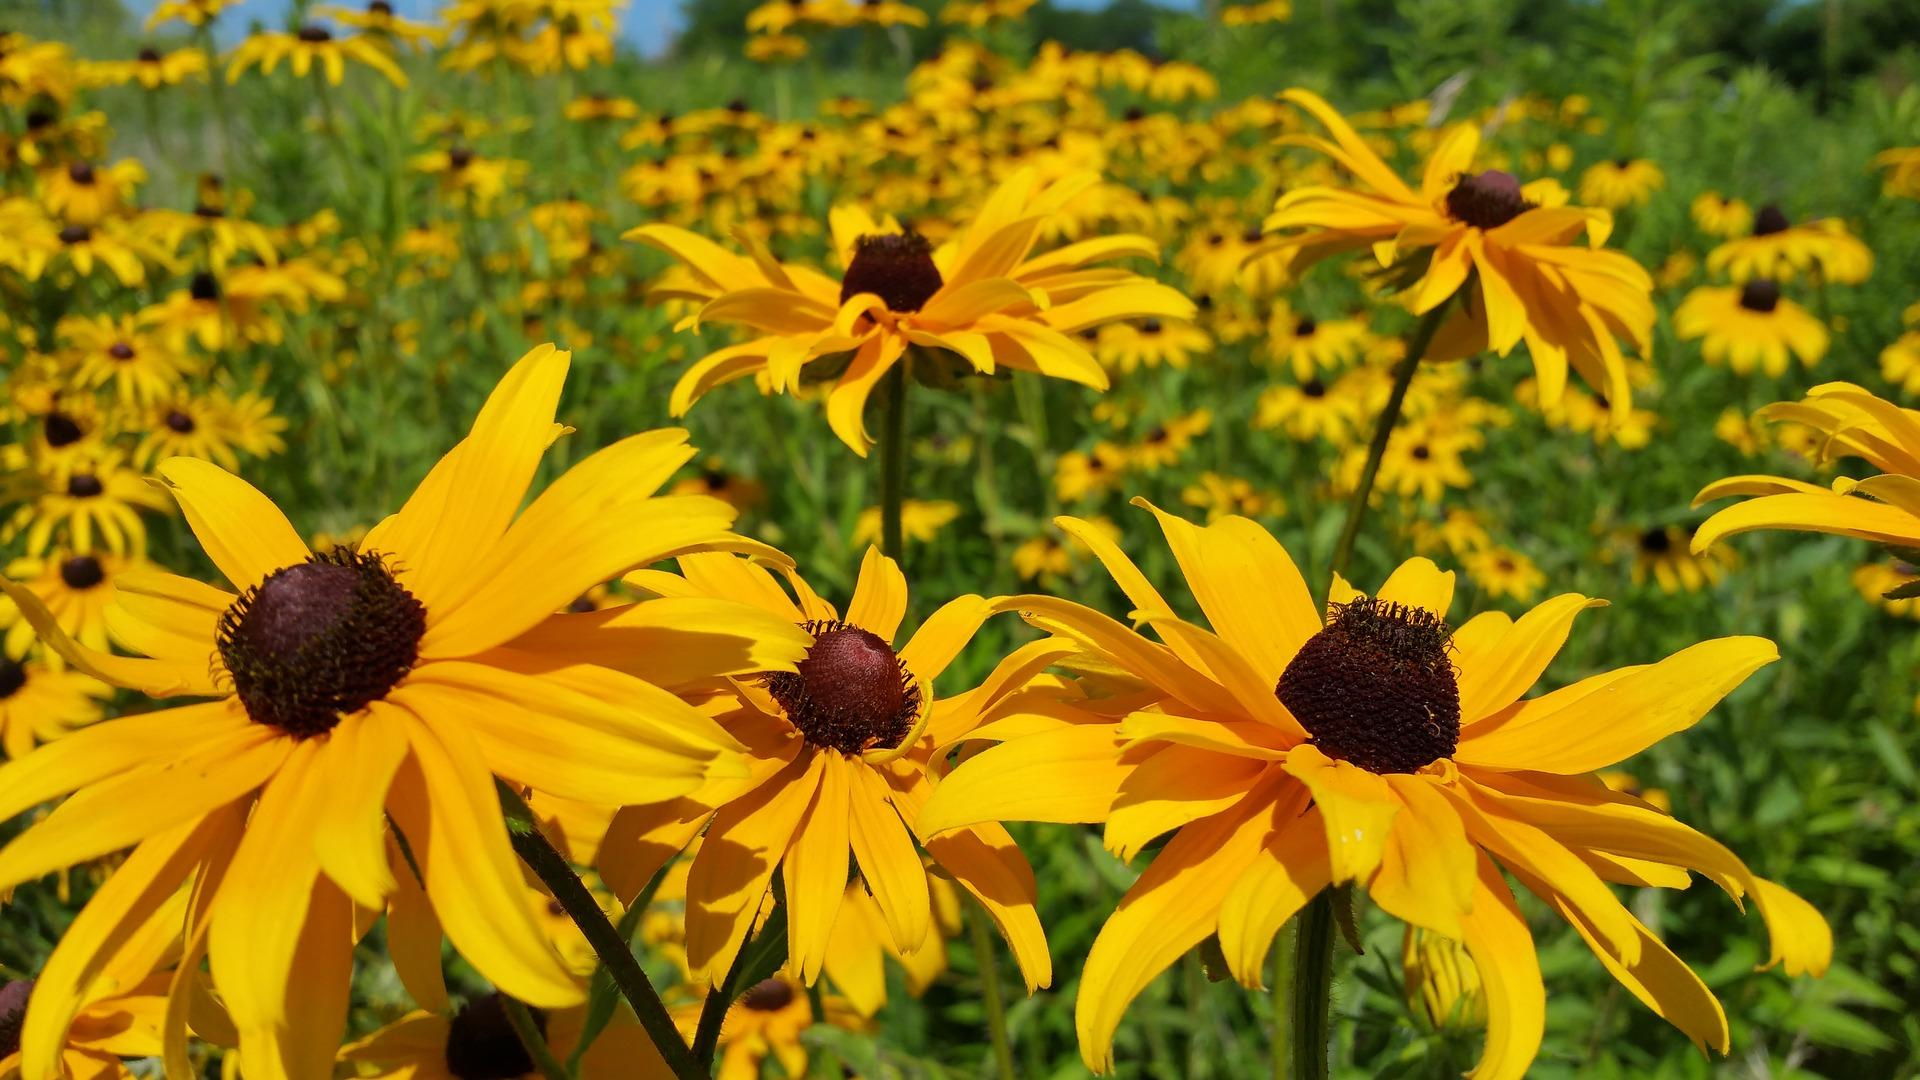 Black-eyed Susans are among the many types of native plants available for purchase. (brian60174 / Pixabay)